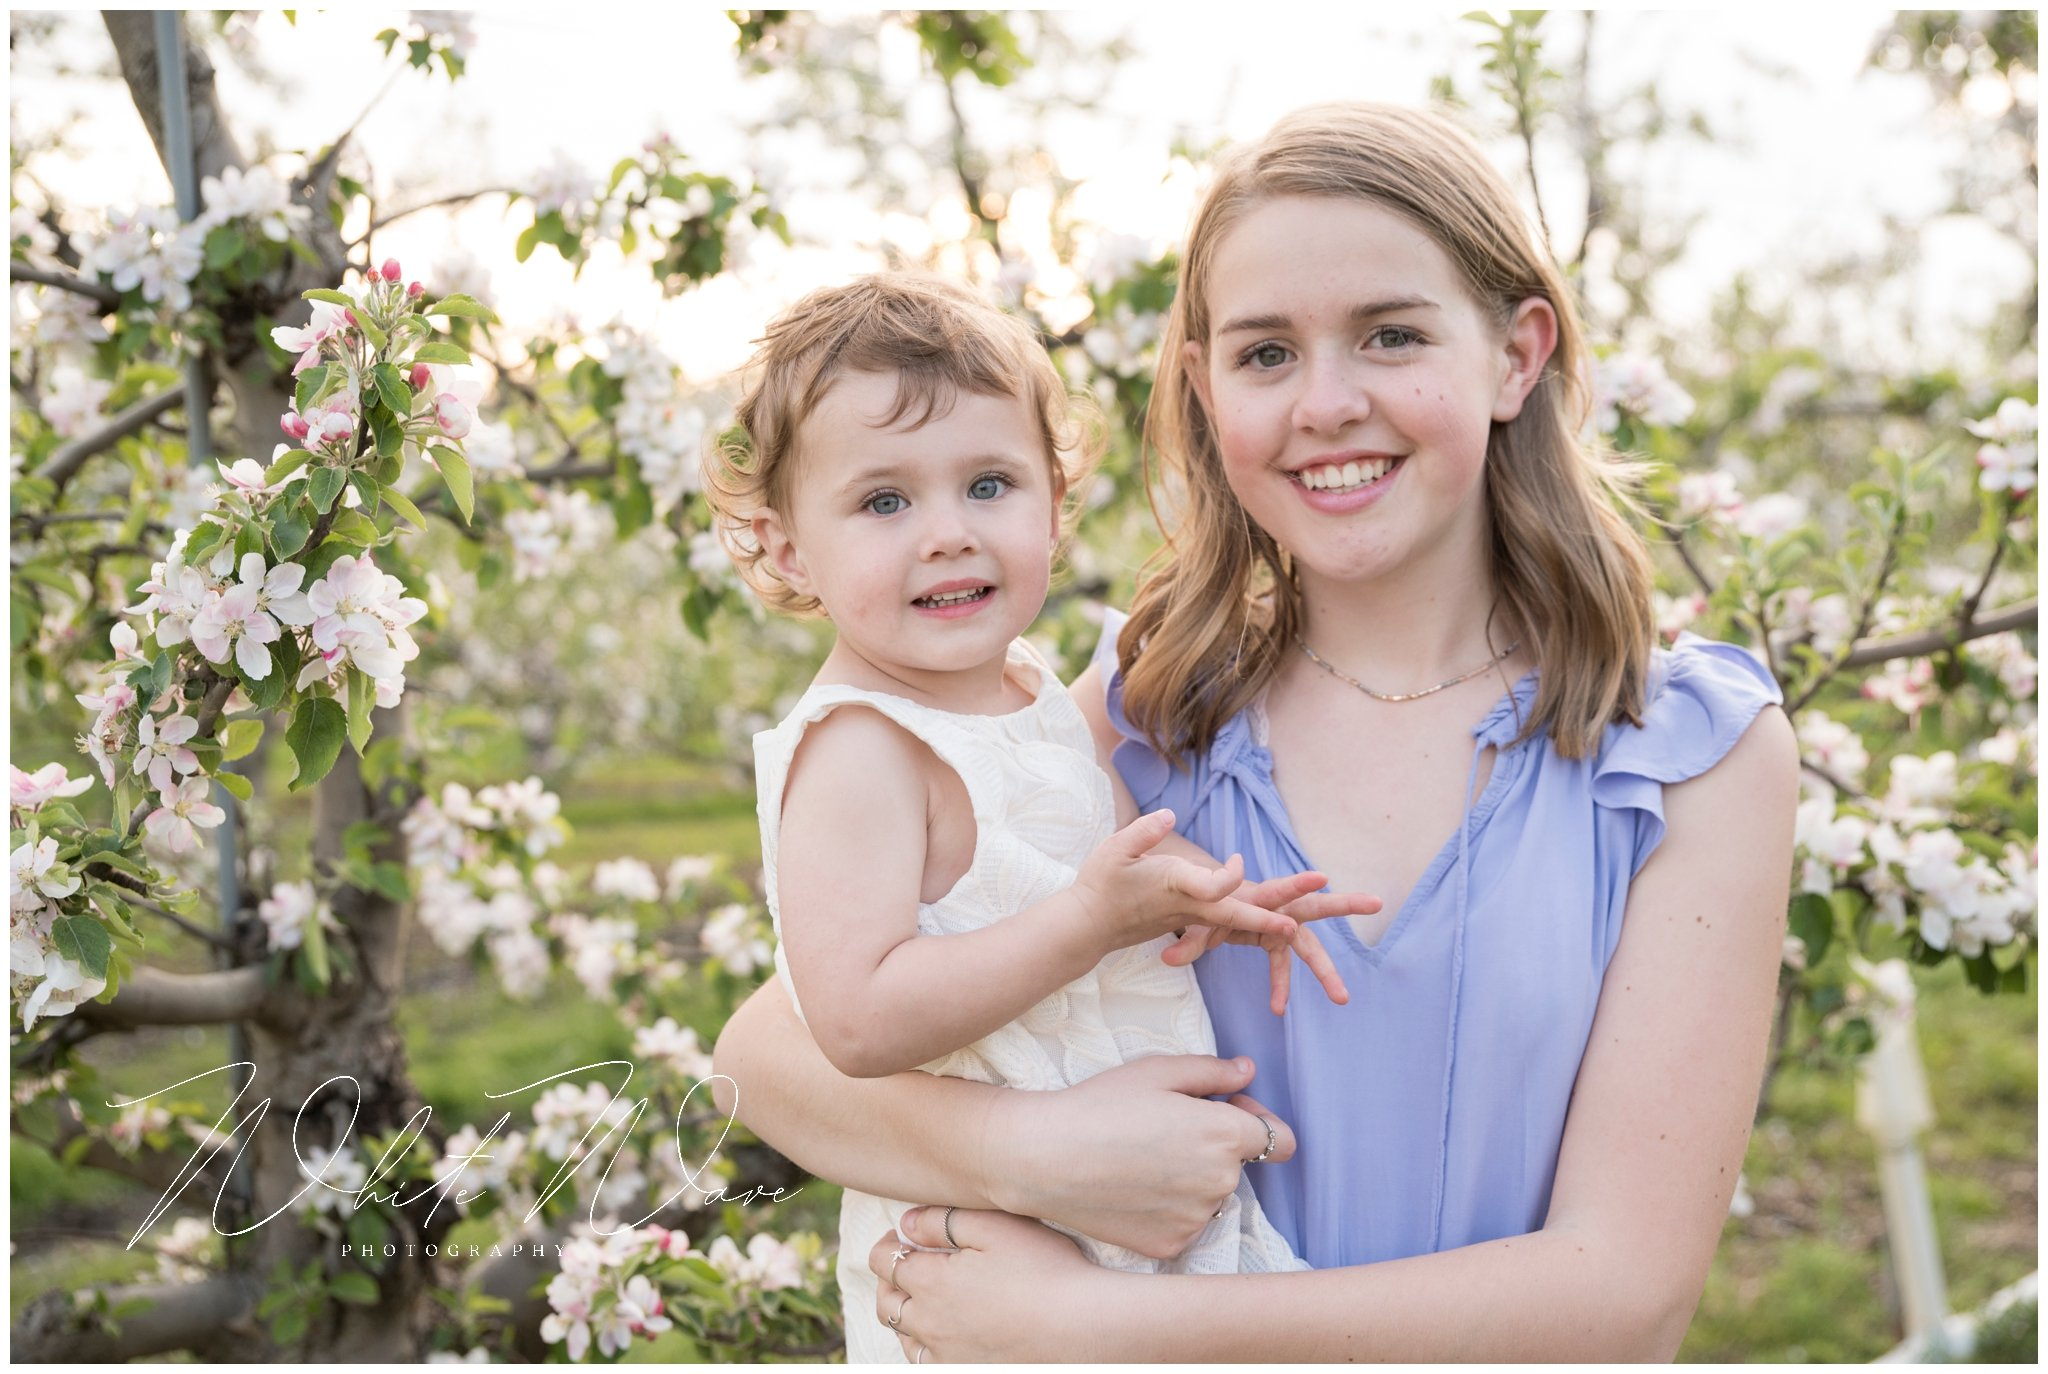 spring family portrait session in exeter, new hampshire